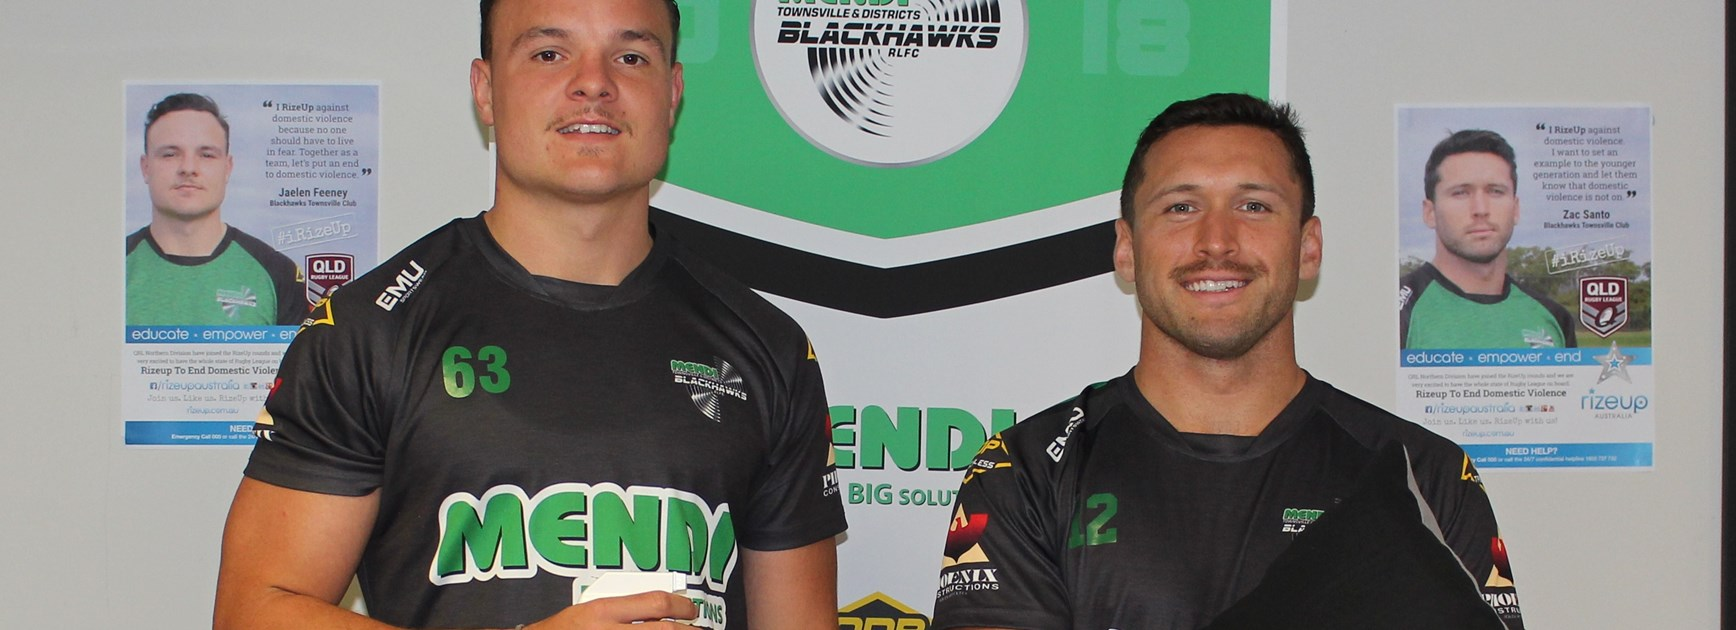 Blackhawks and Townsville region RizeUp